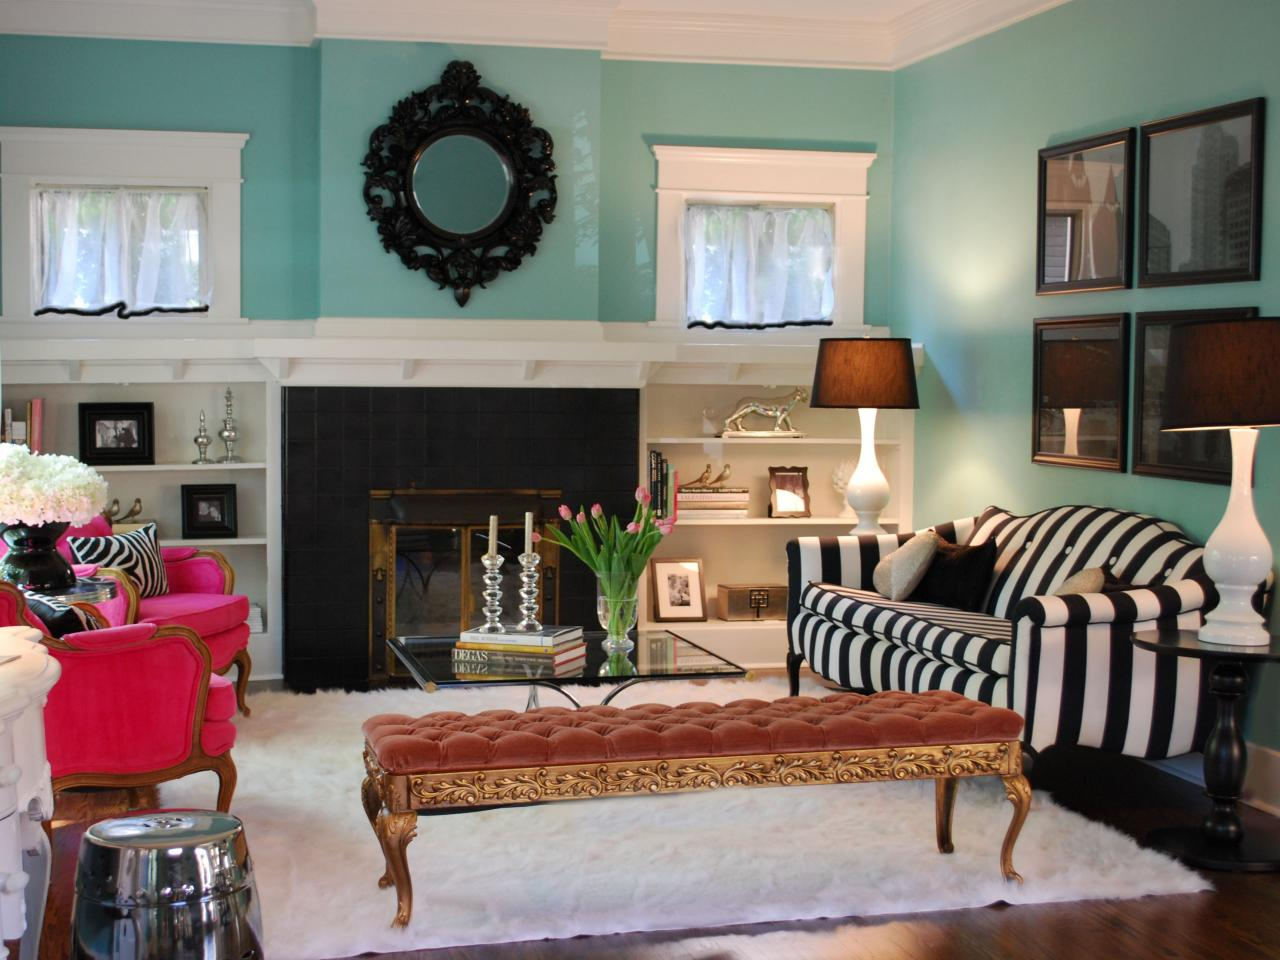 Turquoise Wall Living Room With Striped Black And WHite Sofa Near Fireplace  With Long Bench White